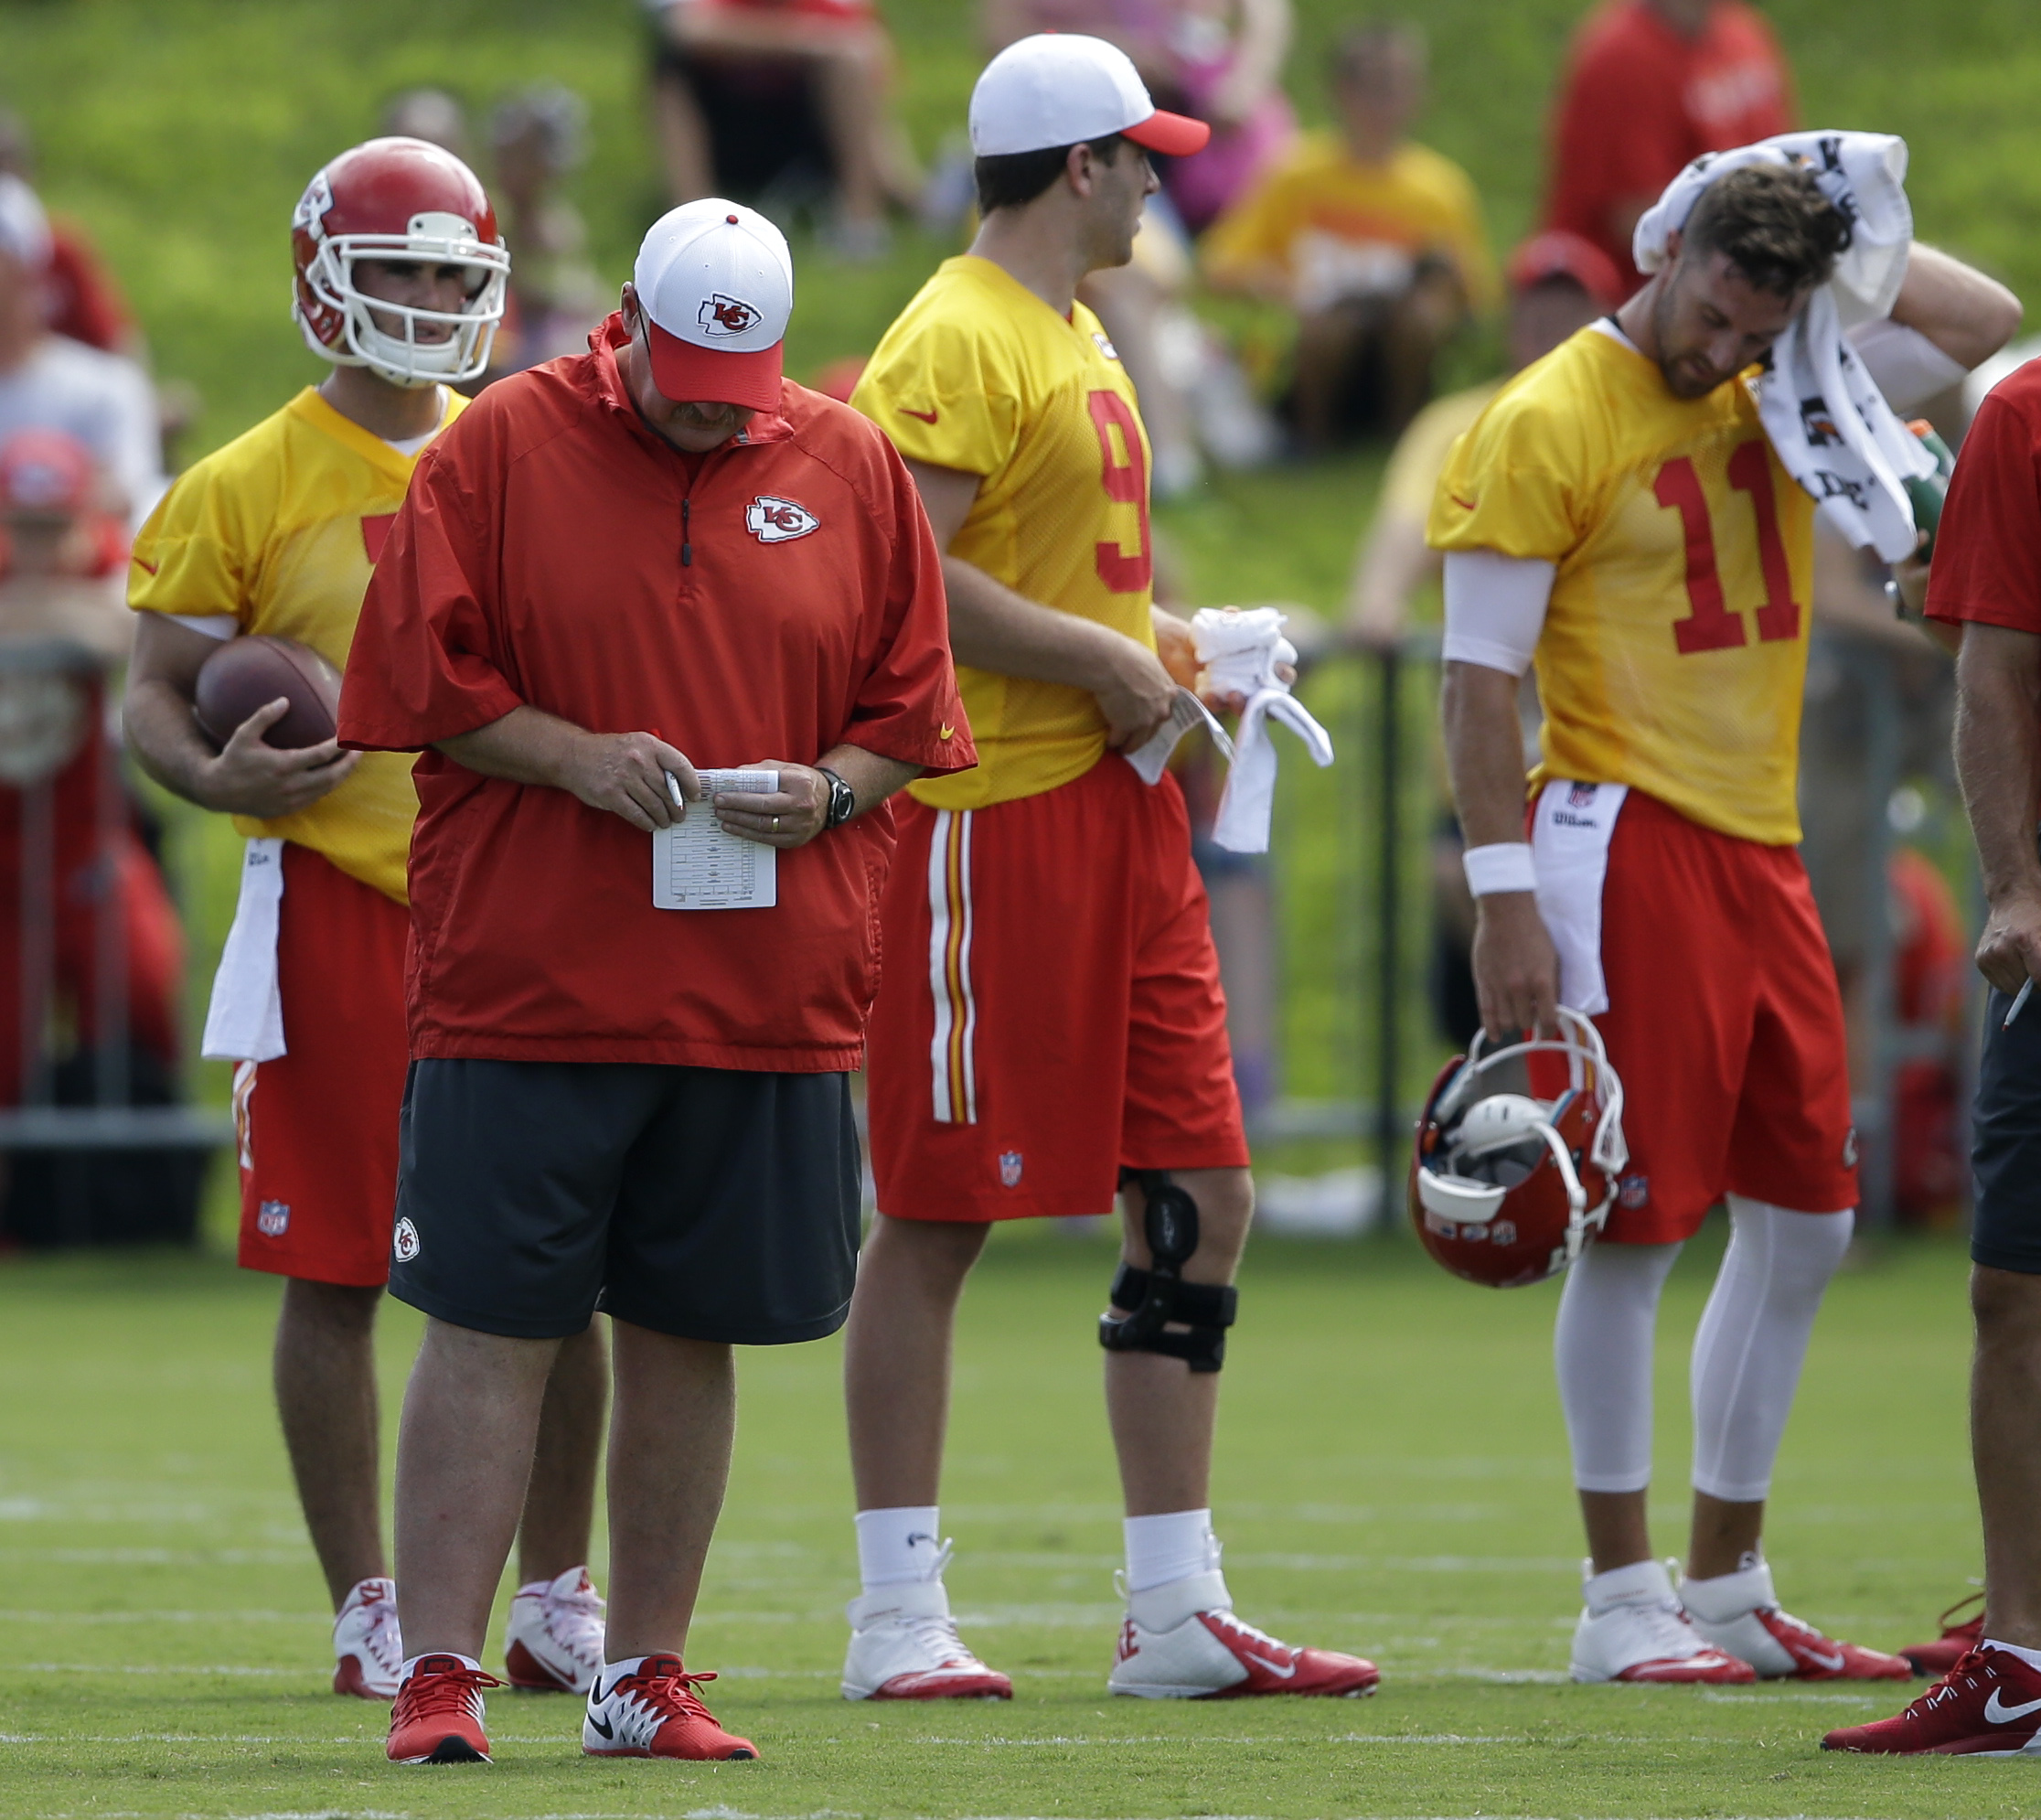 Kansas City Chiefs coach Andy Reid , front left, checks his notes in front of quarterbacks Alex Smith (11), Tyler Bray (9) and Aaron Murray, back left, during NFL football training camp in St. Joseph, Mo., Saturday, Aug. 1, 2015. (AP Photo/Orlin Wagner)